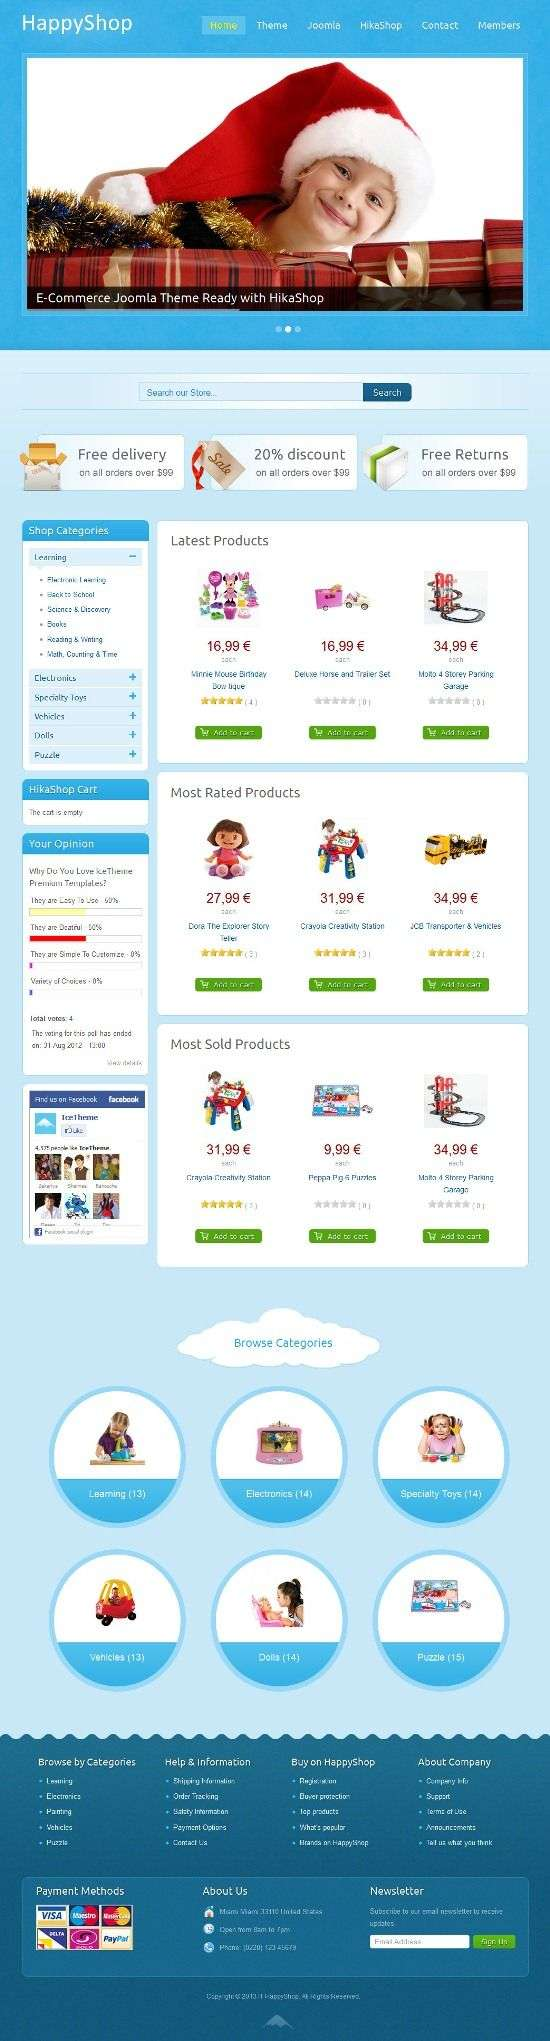 it happyshop icetheme avjthemescom 01 - IT Happyshop Joomla Template